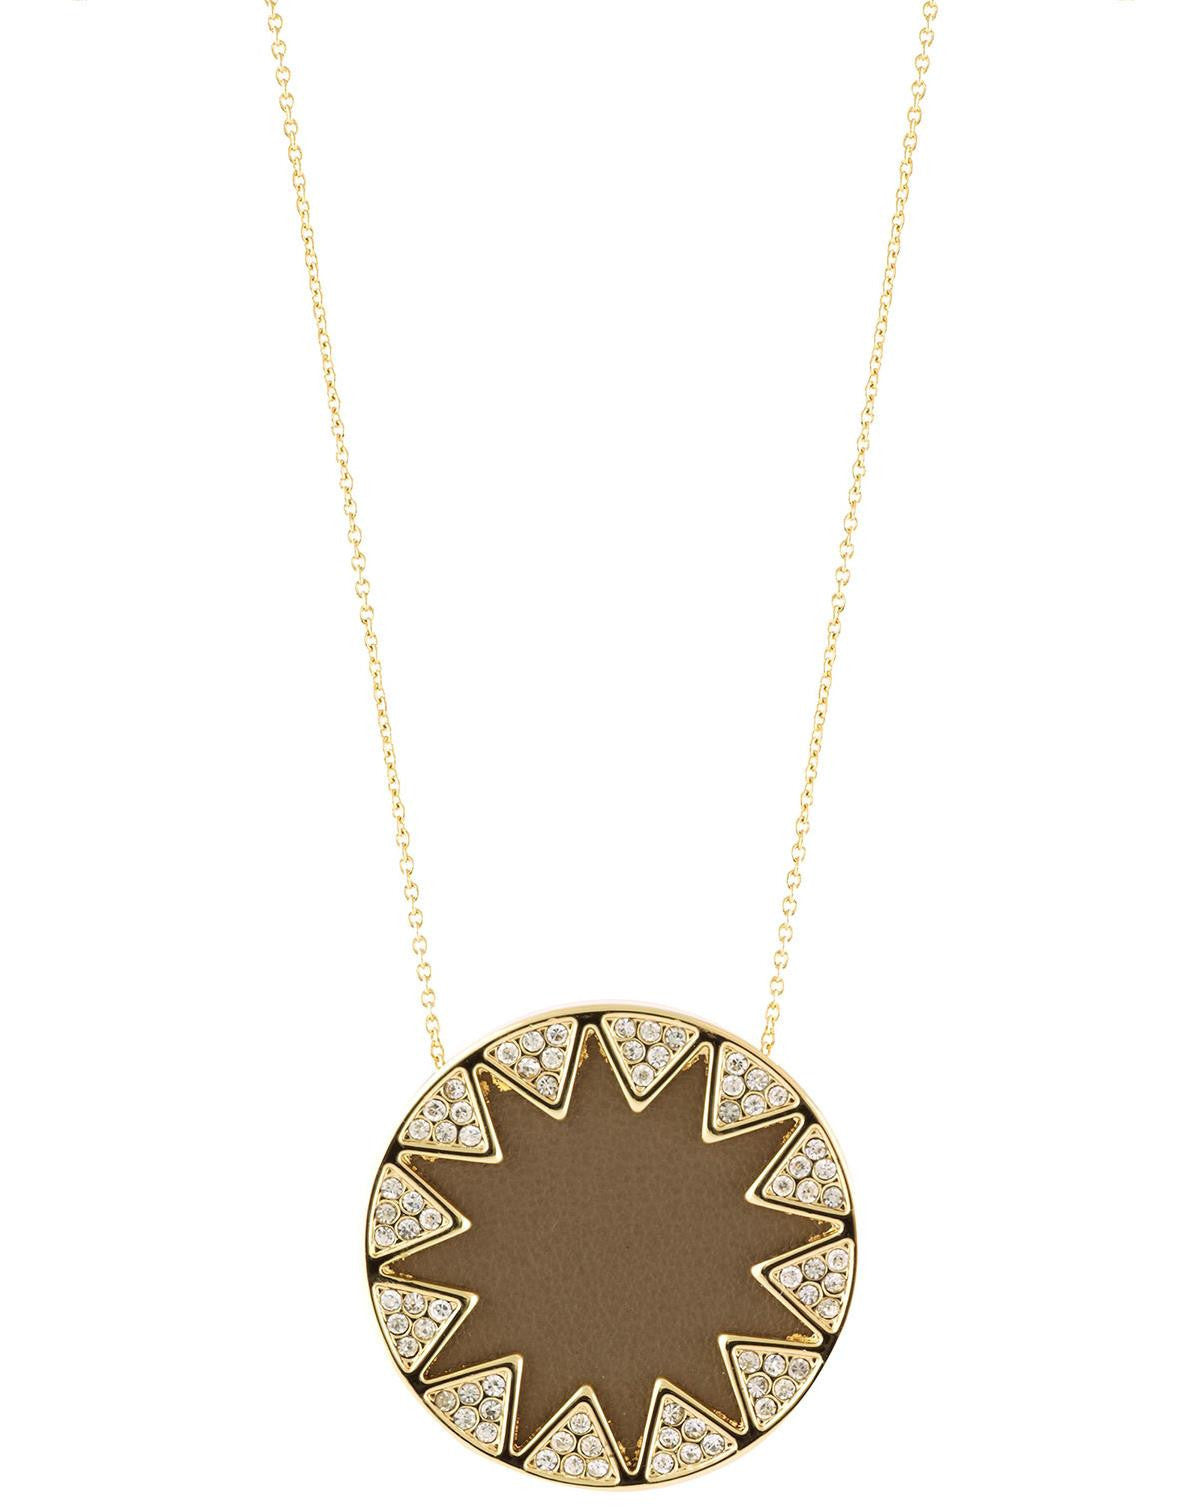 starburst i b rockhampton a semiprecious s g necklace h sunburst r products blush